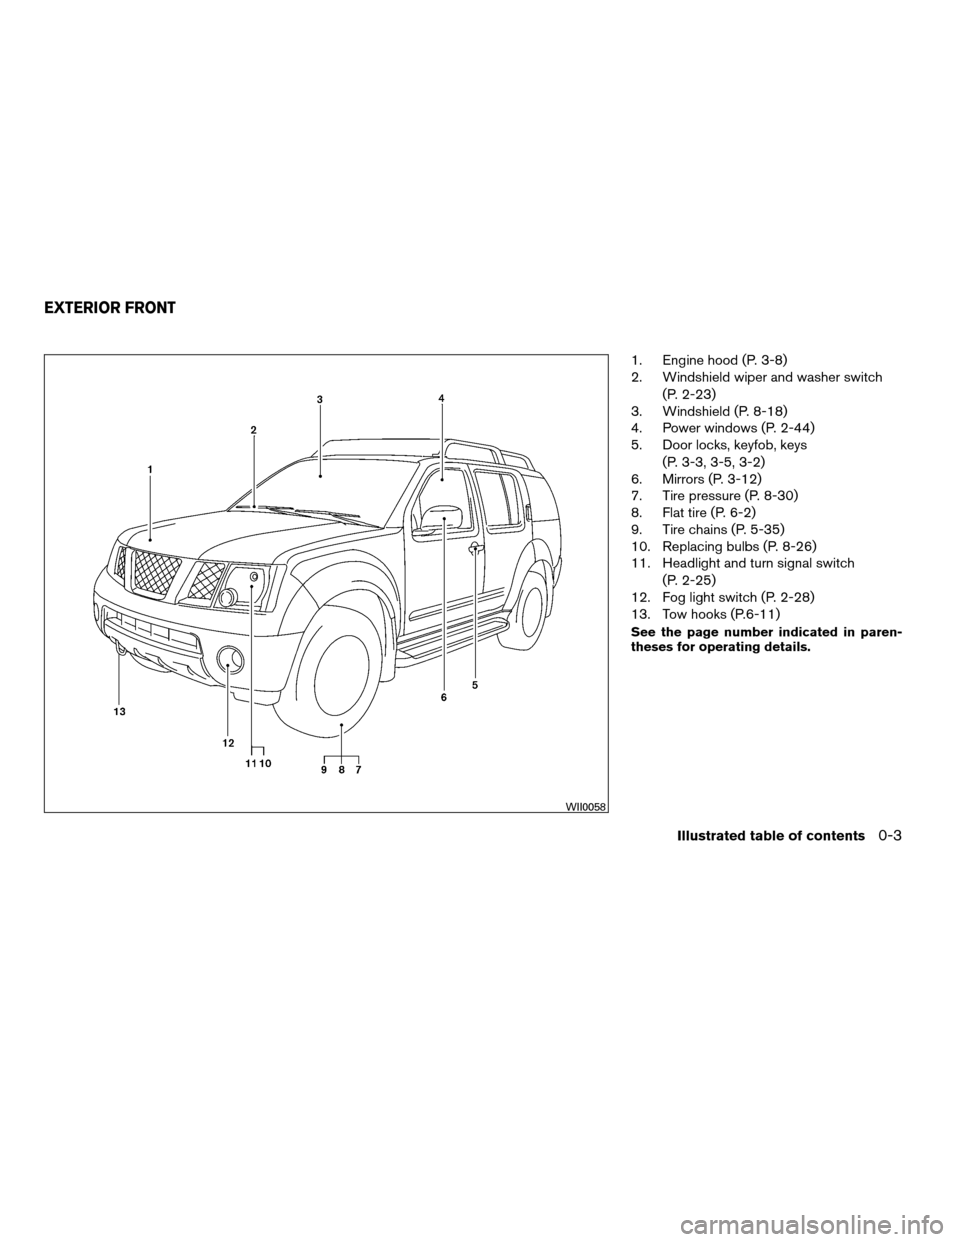 NISSAN XTERRA 2008 N50 / 2.G Owners Manual